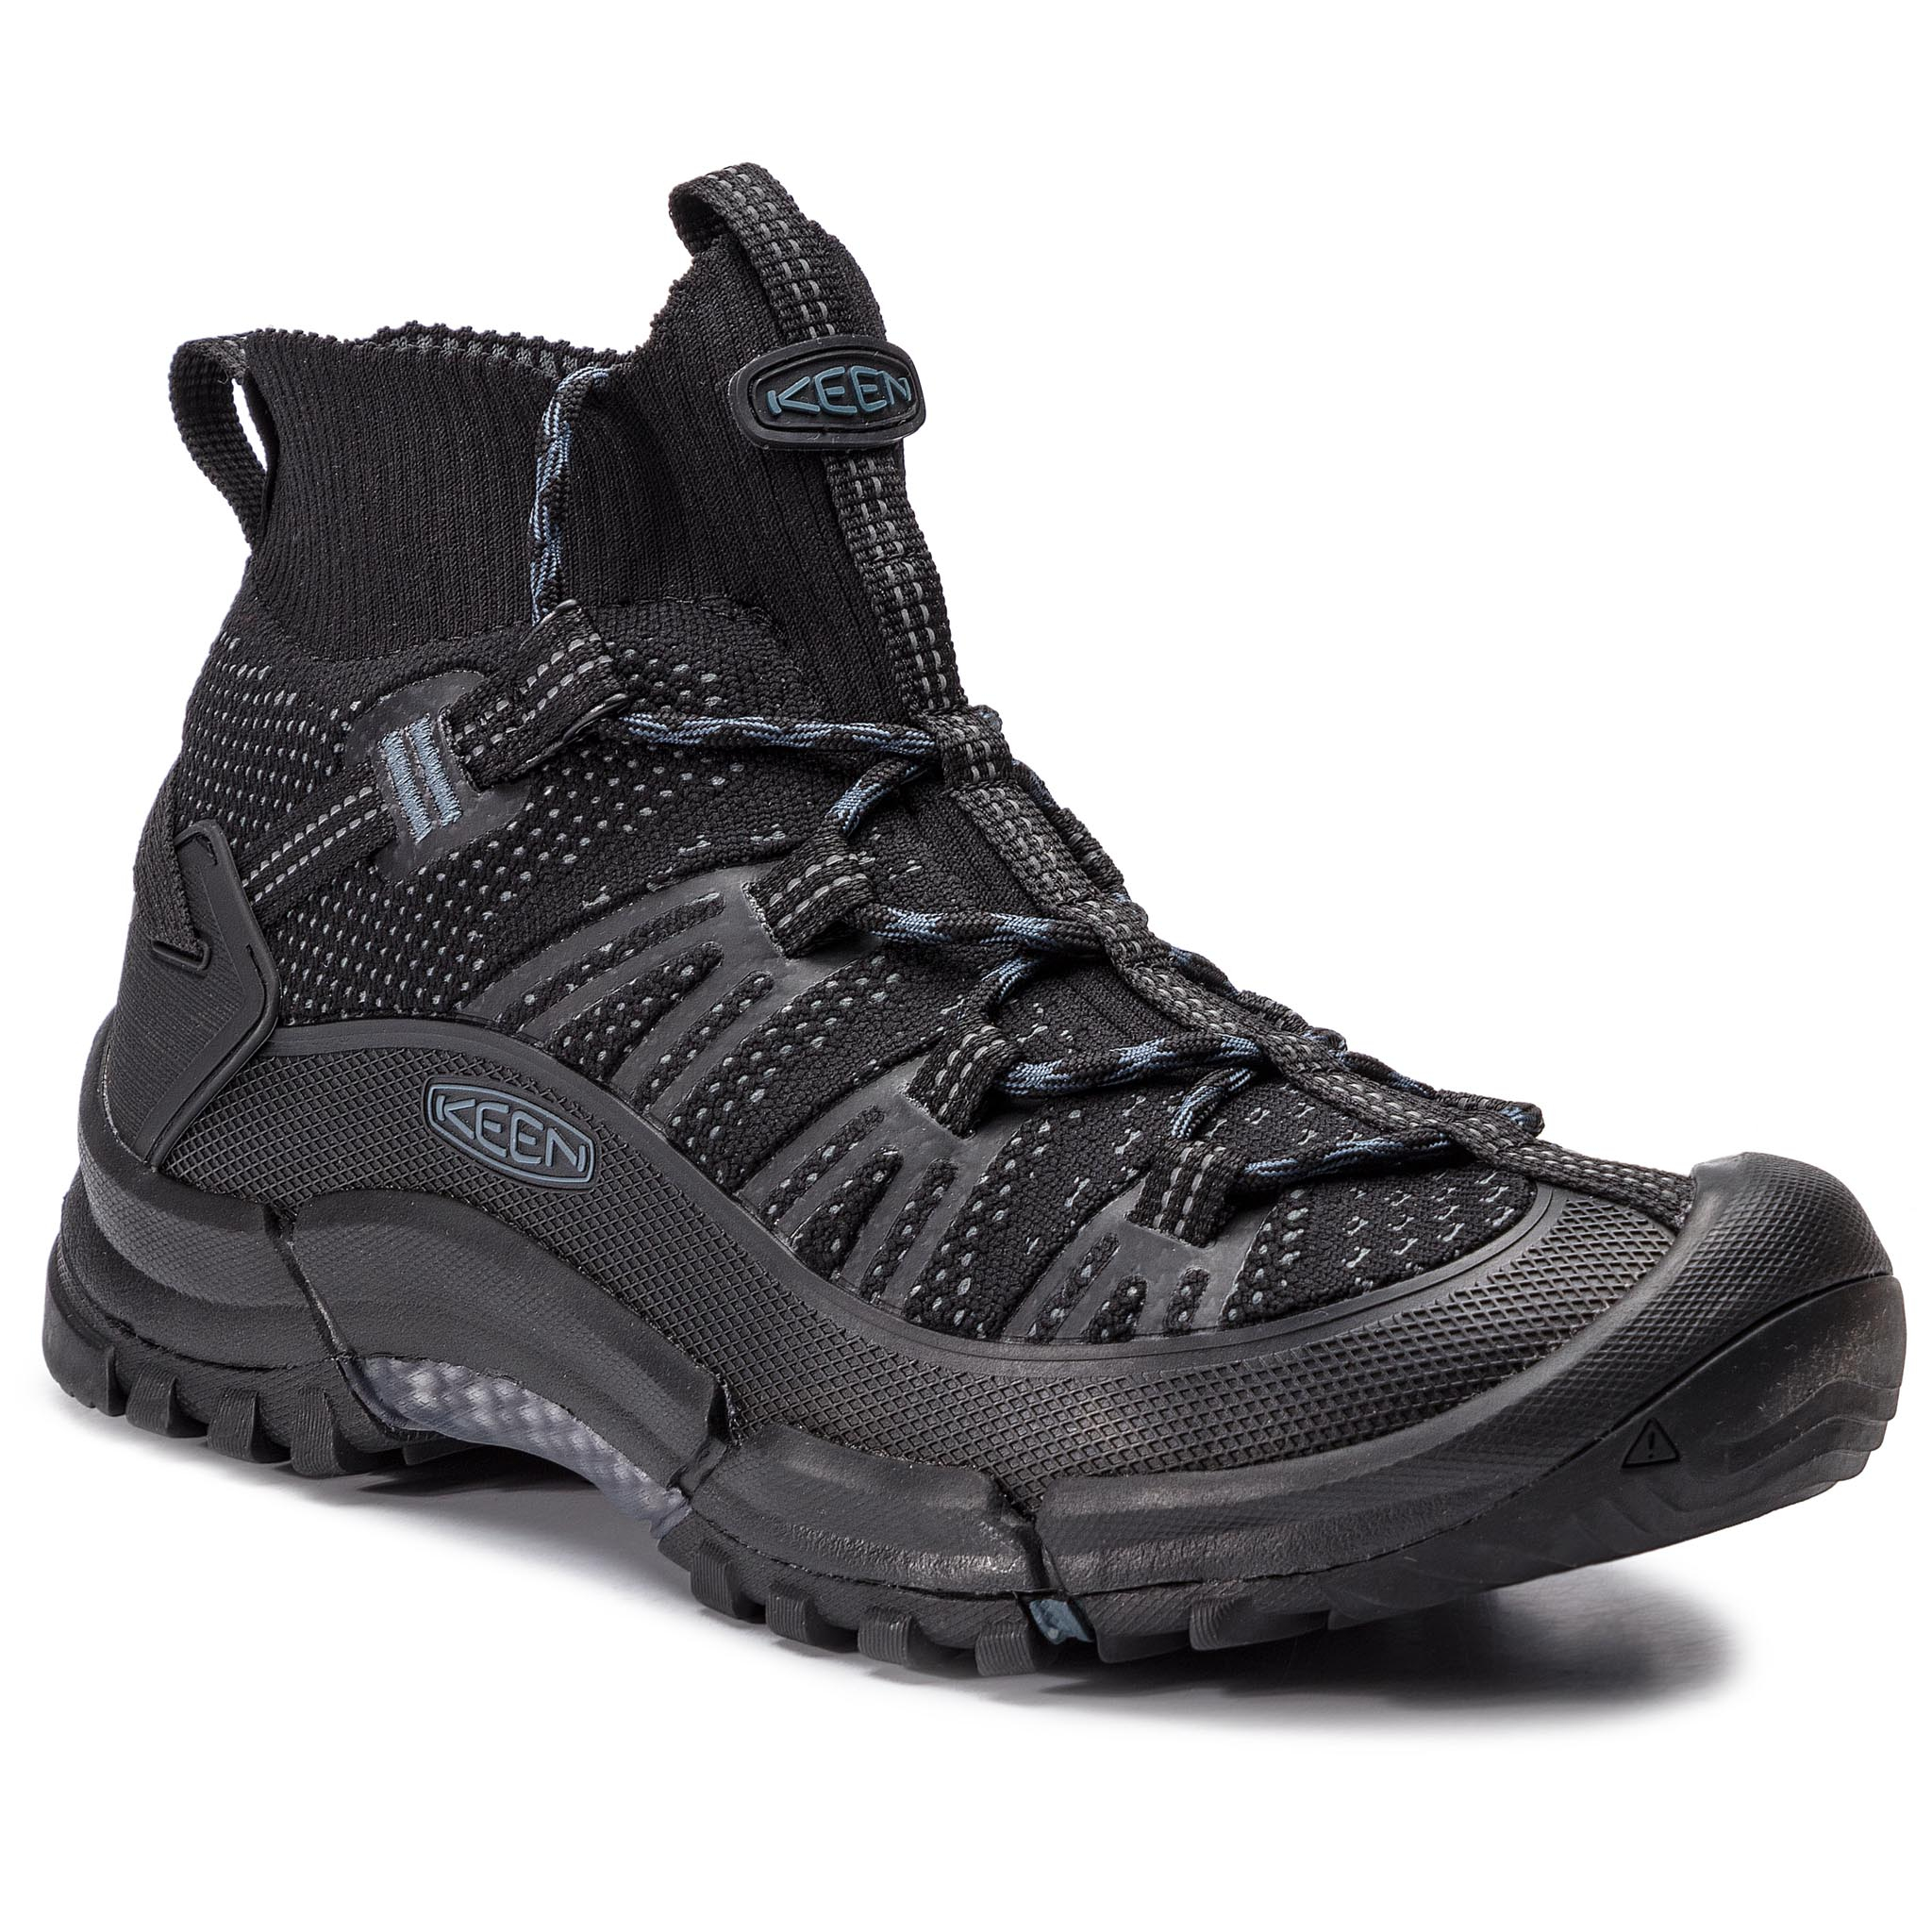 Trekkings Keen - Axis Evo Mid 1021178 Black/Slate imagine epantofi.ro 2021